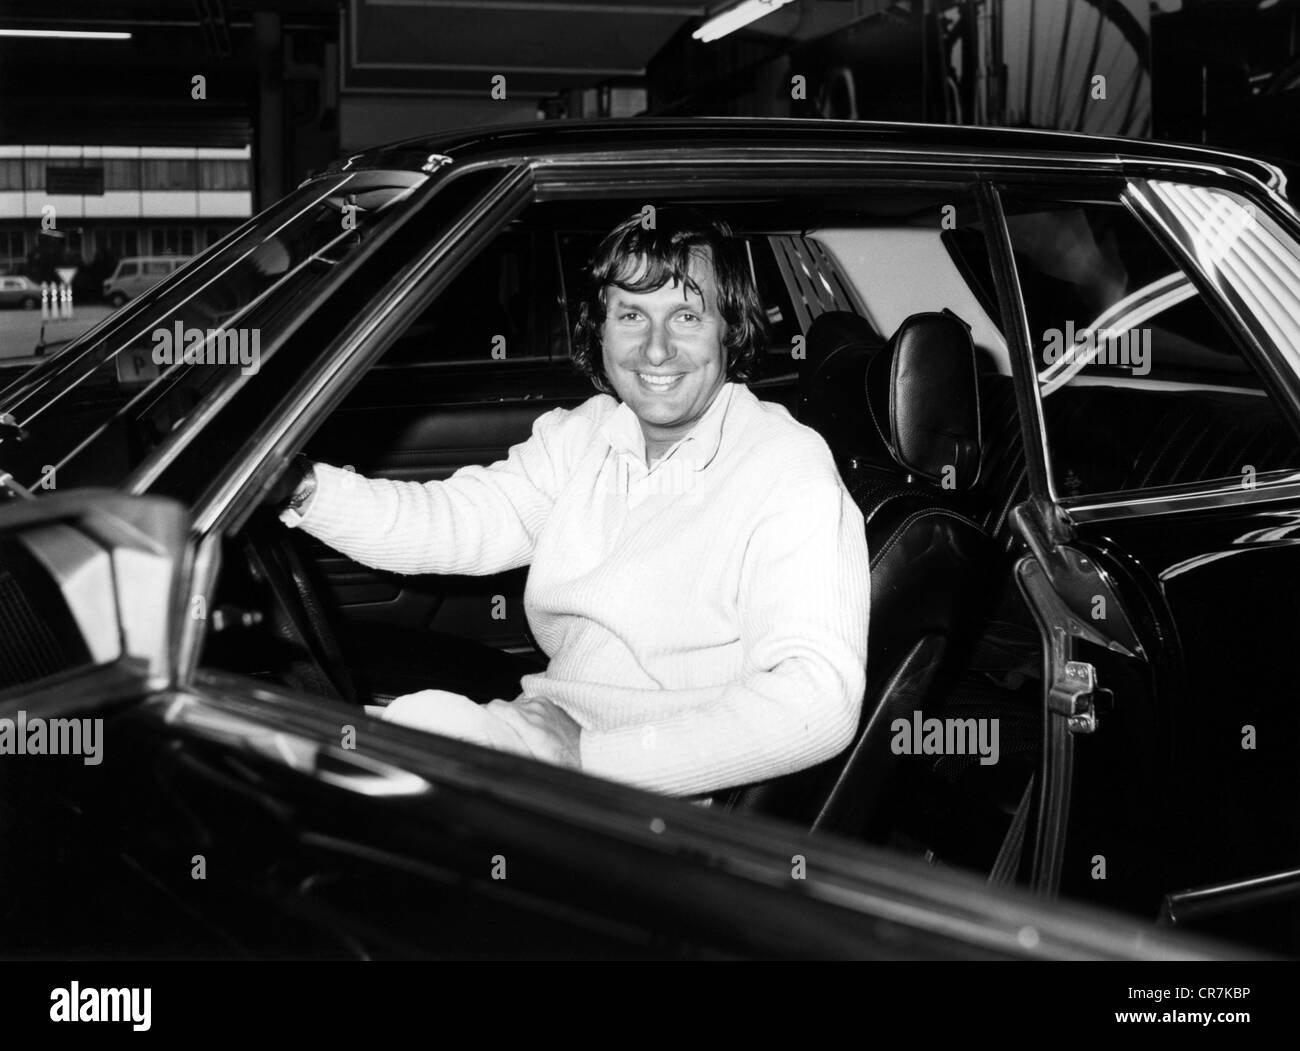 Jarier, Jean-Pierre, * 10.6.1946, French racing driver, in a Mercedes-Benz 450 SLC, 1980s, Additional-Rights-Clearances - Stock Image